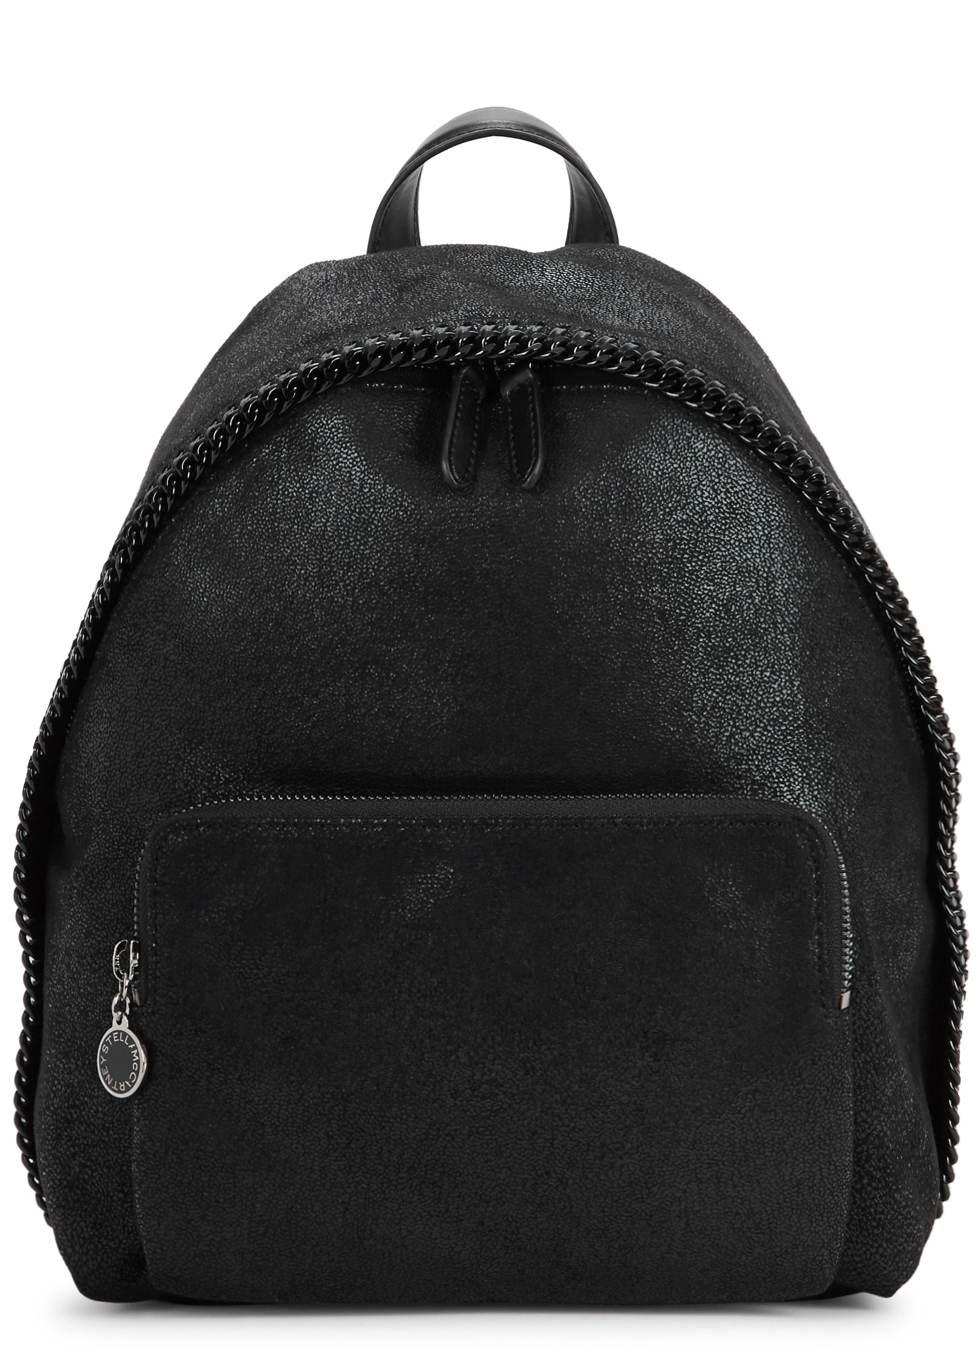 FALABELLA BLACK BACKPACK